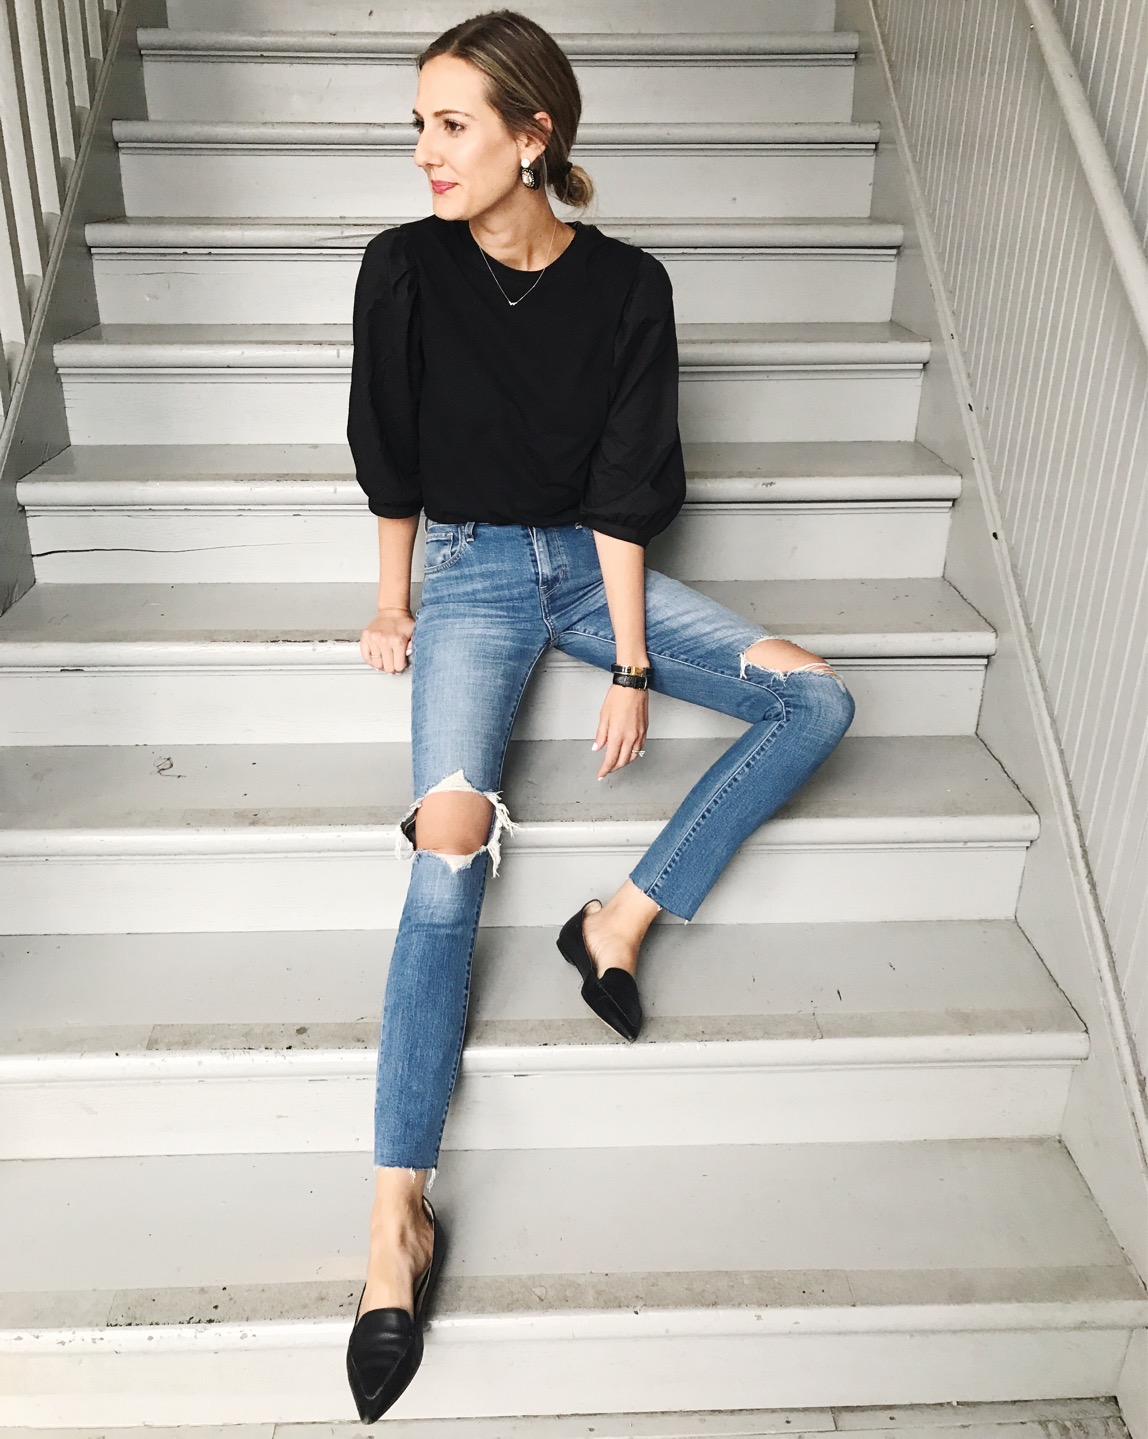 levis 721 distressed jeans target who what wear m gemi stellato